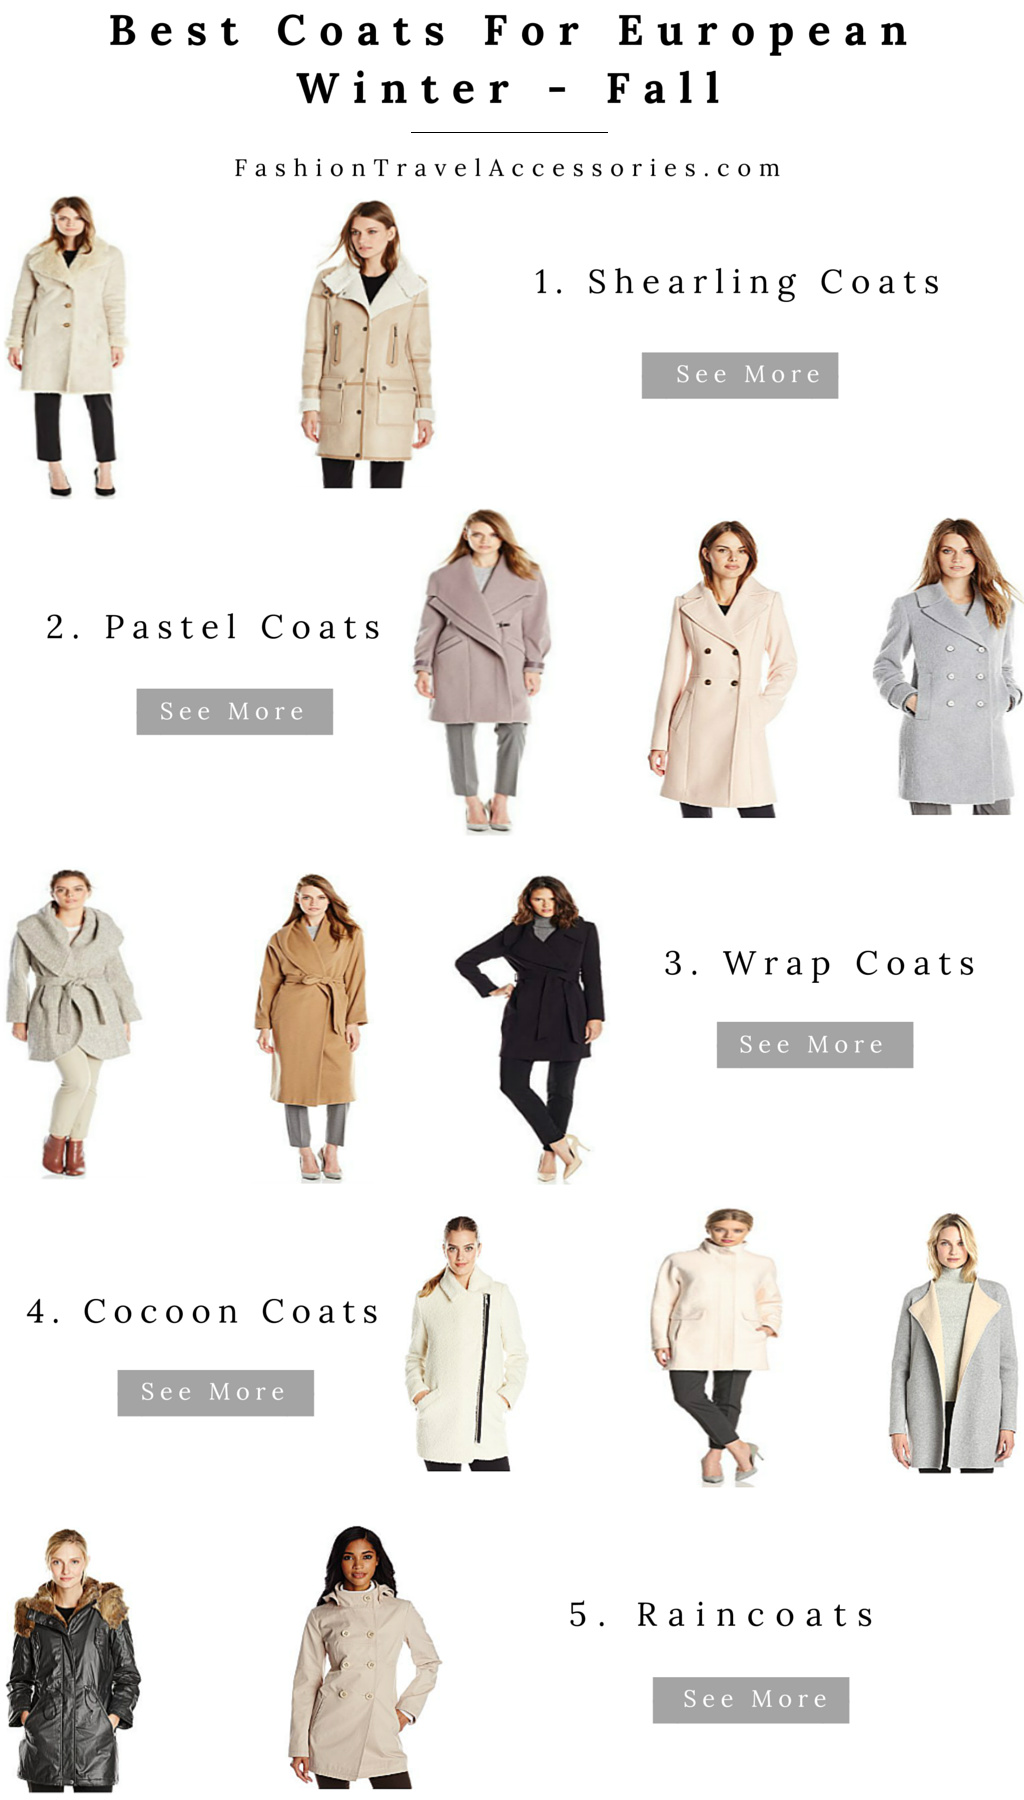 Best Coats For European Winter & Fall For Everyday Fashion